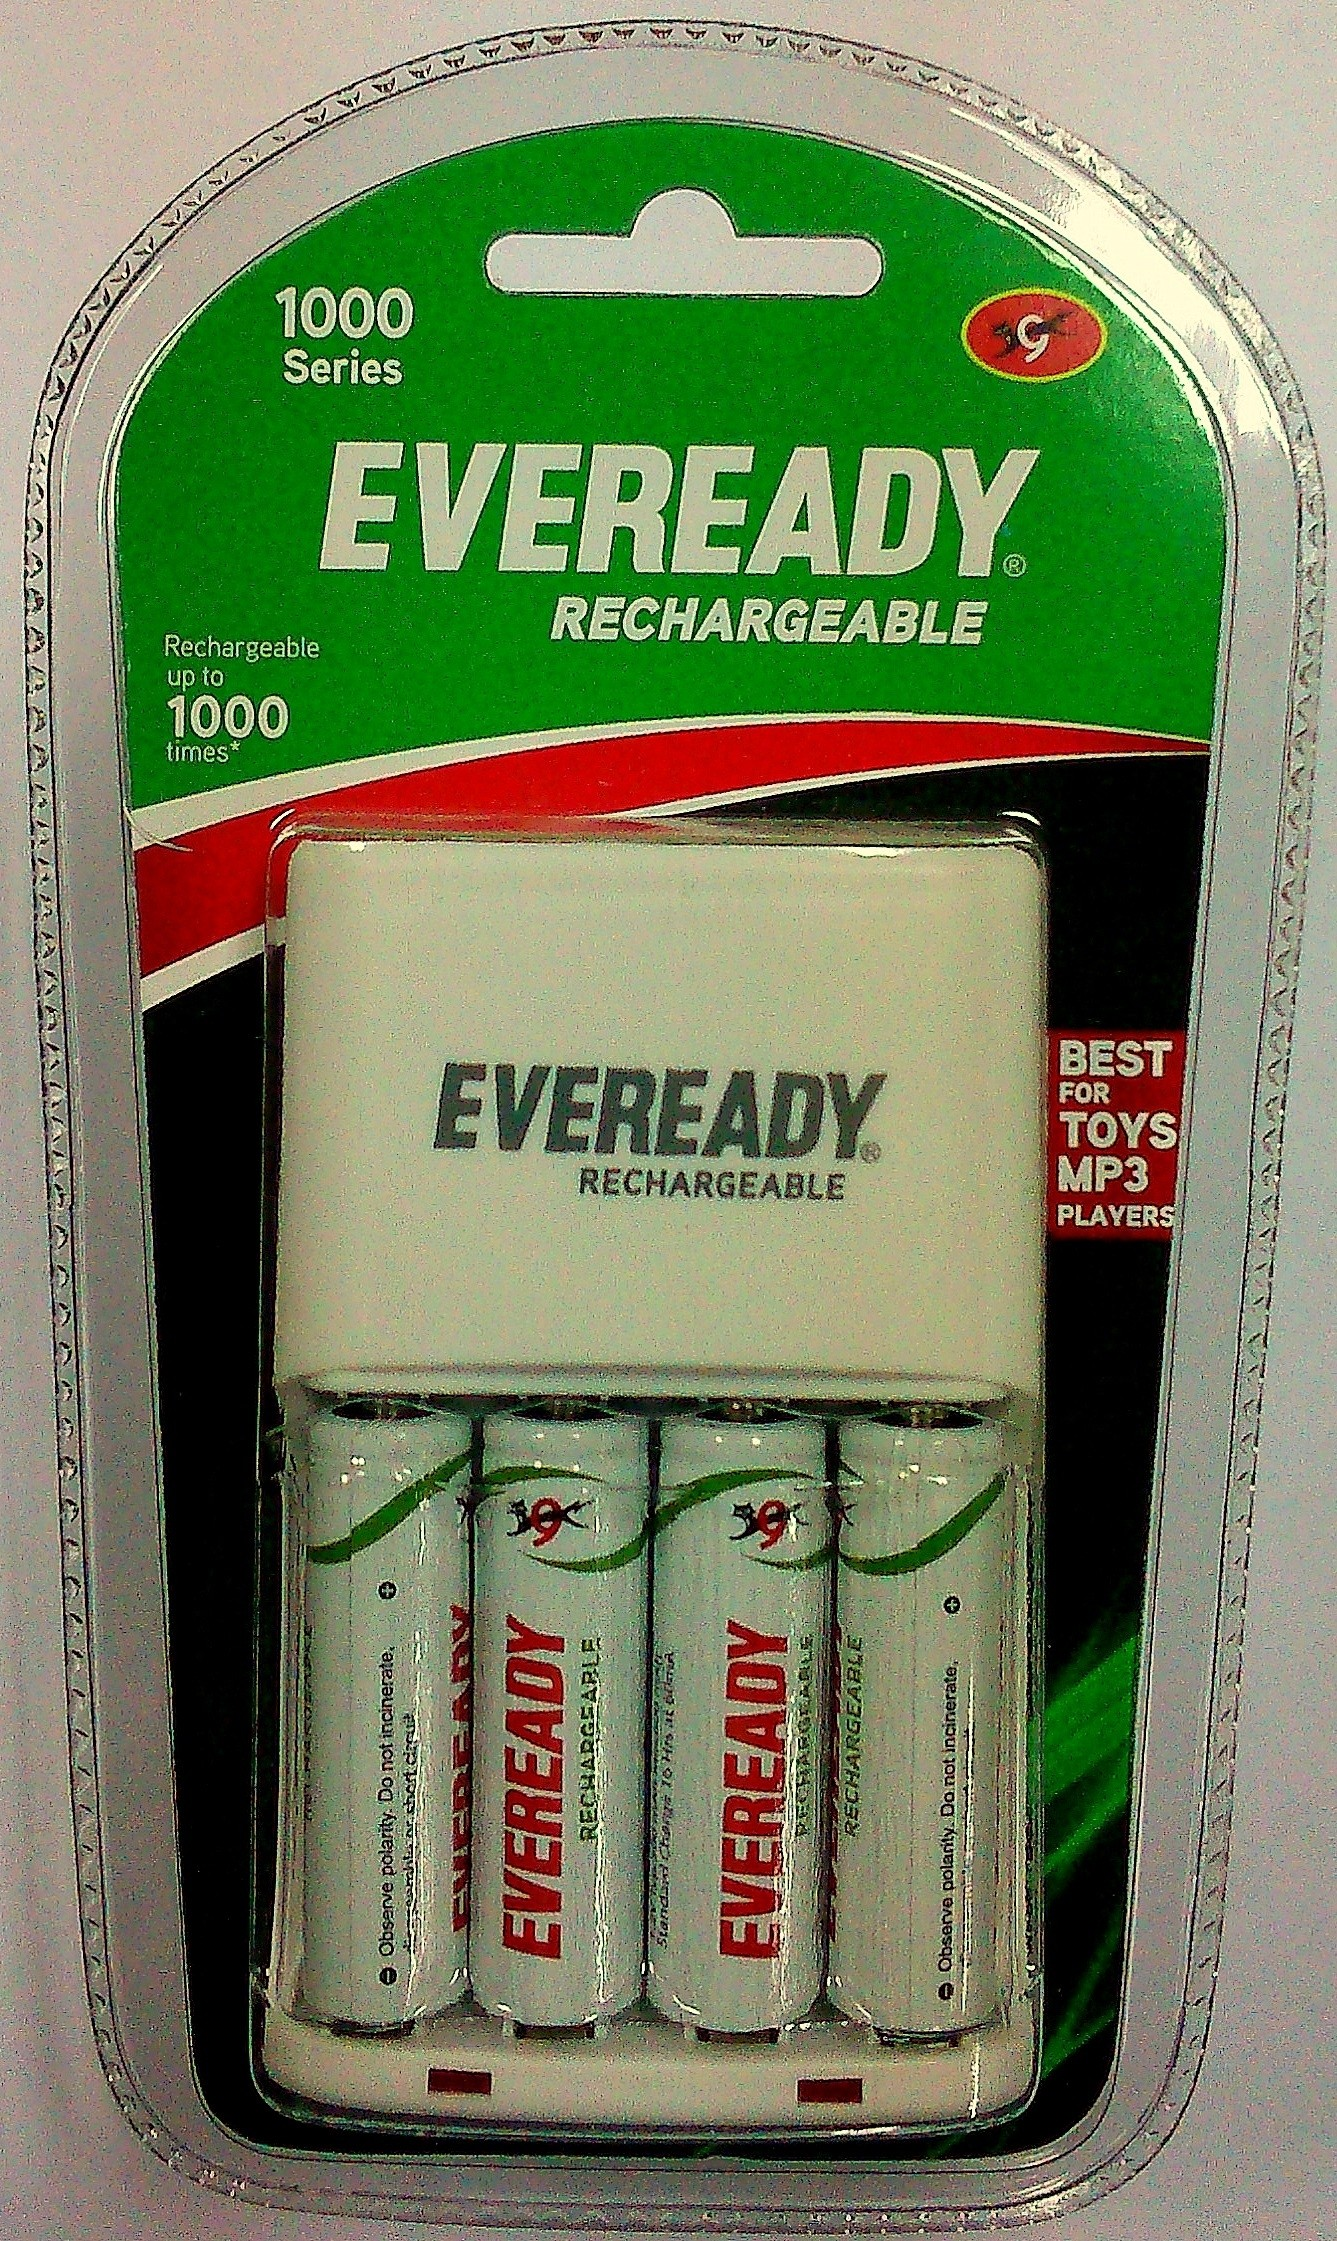 Eveready 1000 Series With 4 Aa Rechargeable Battery